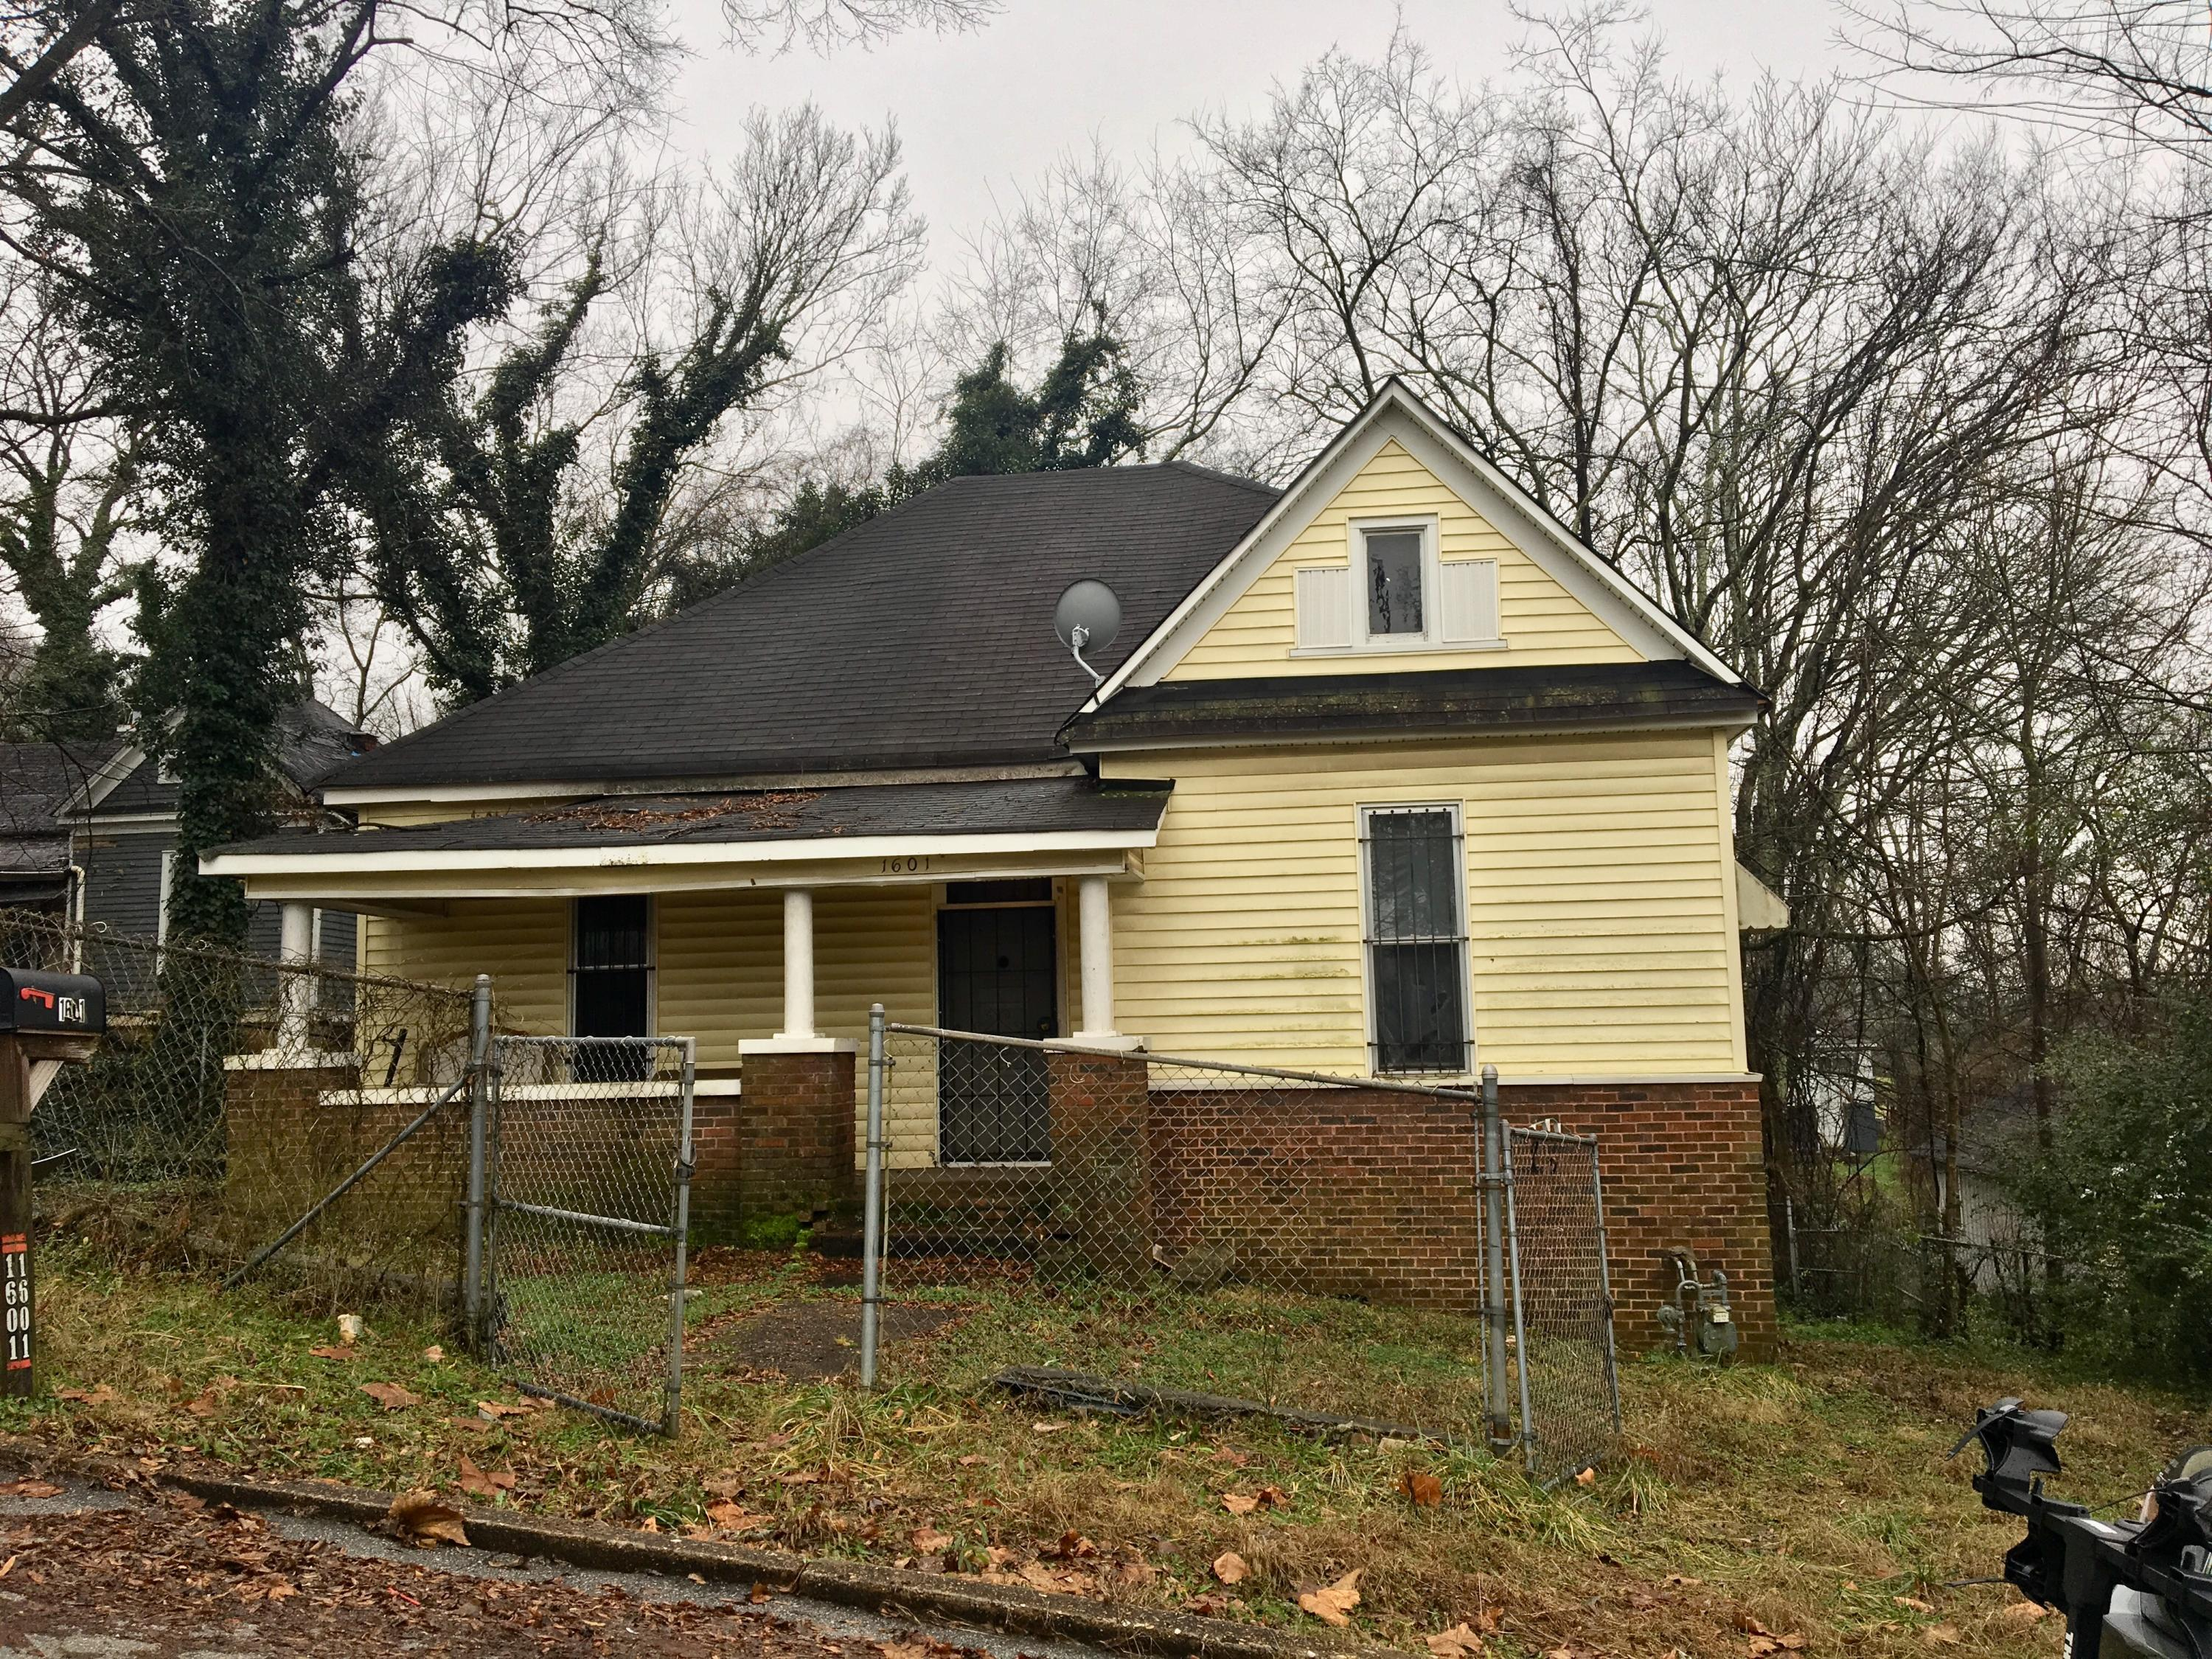 1601 Old Ringgold Rd, Chattanooga, TN 37404